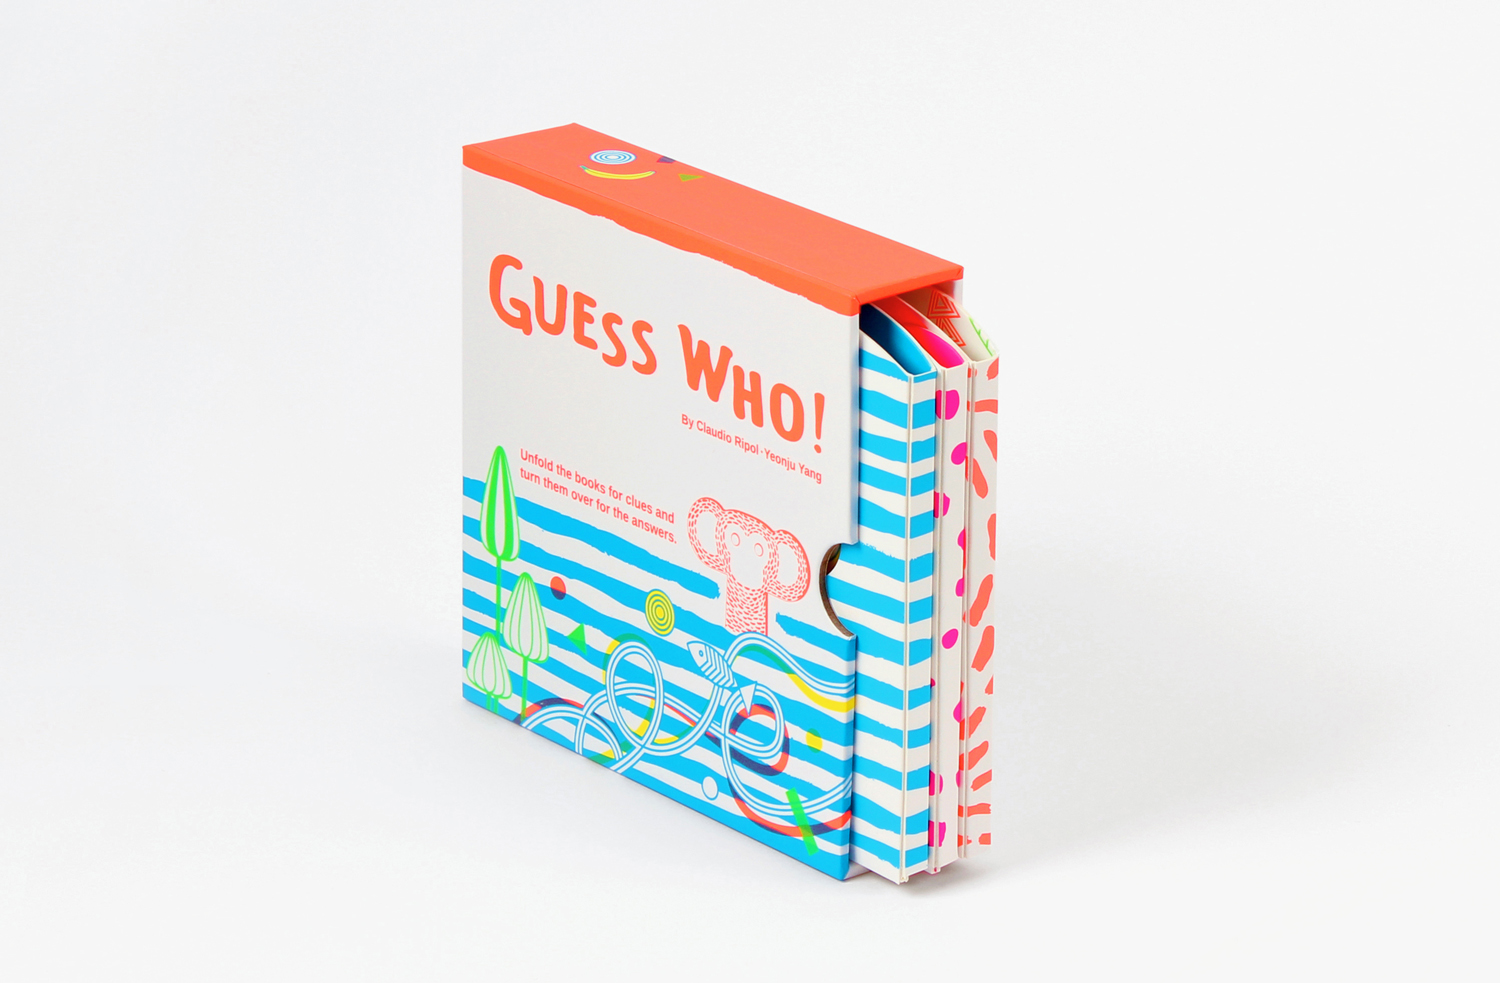 Shop 'Guess Who!'